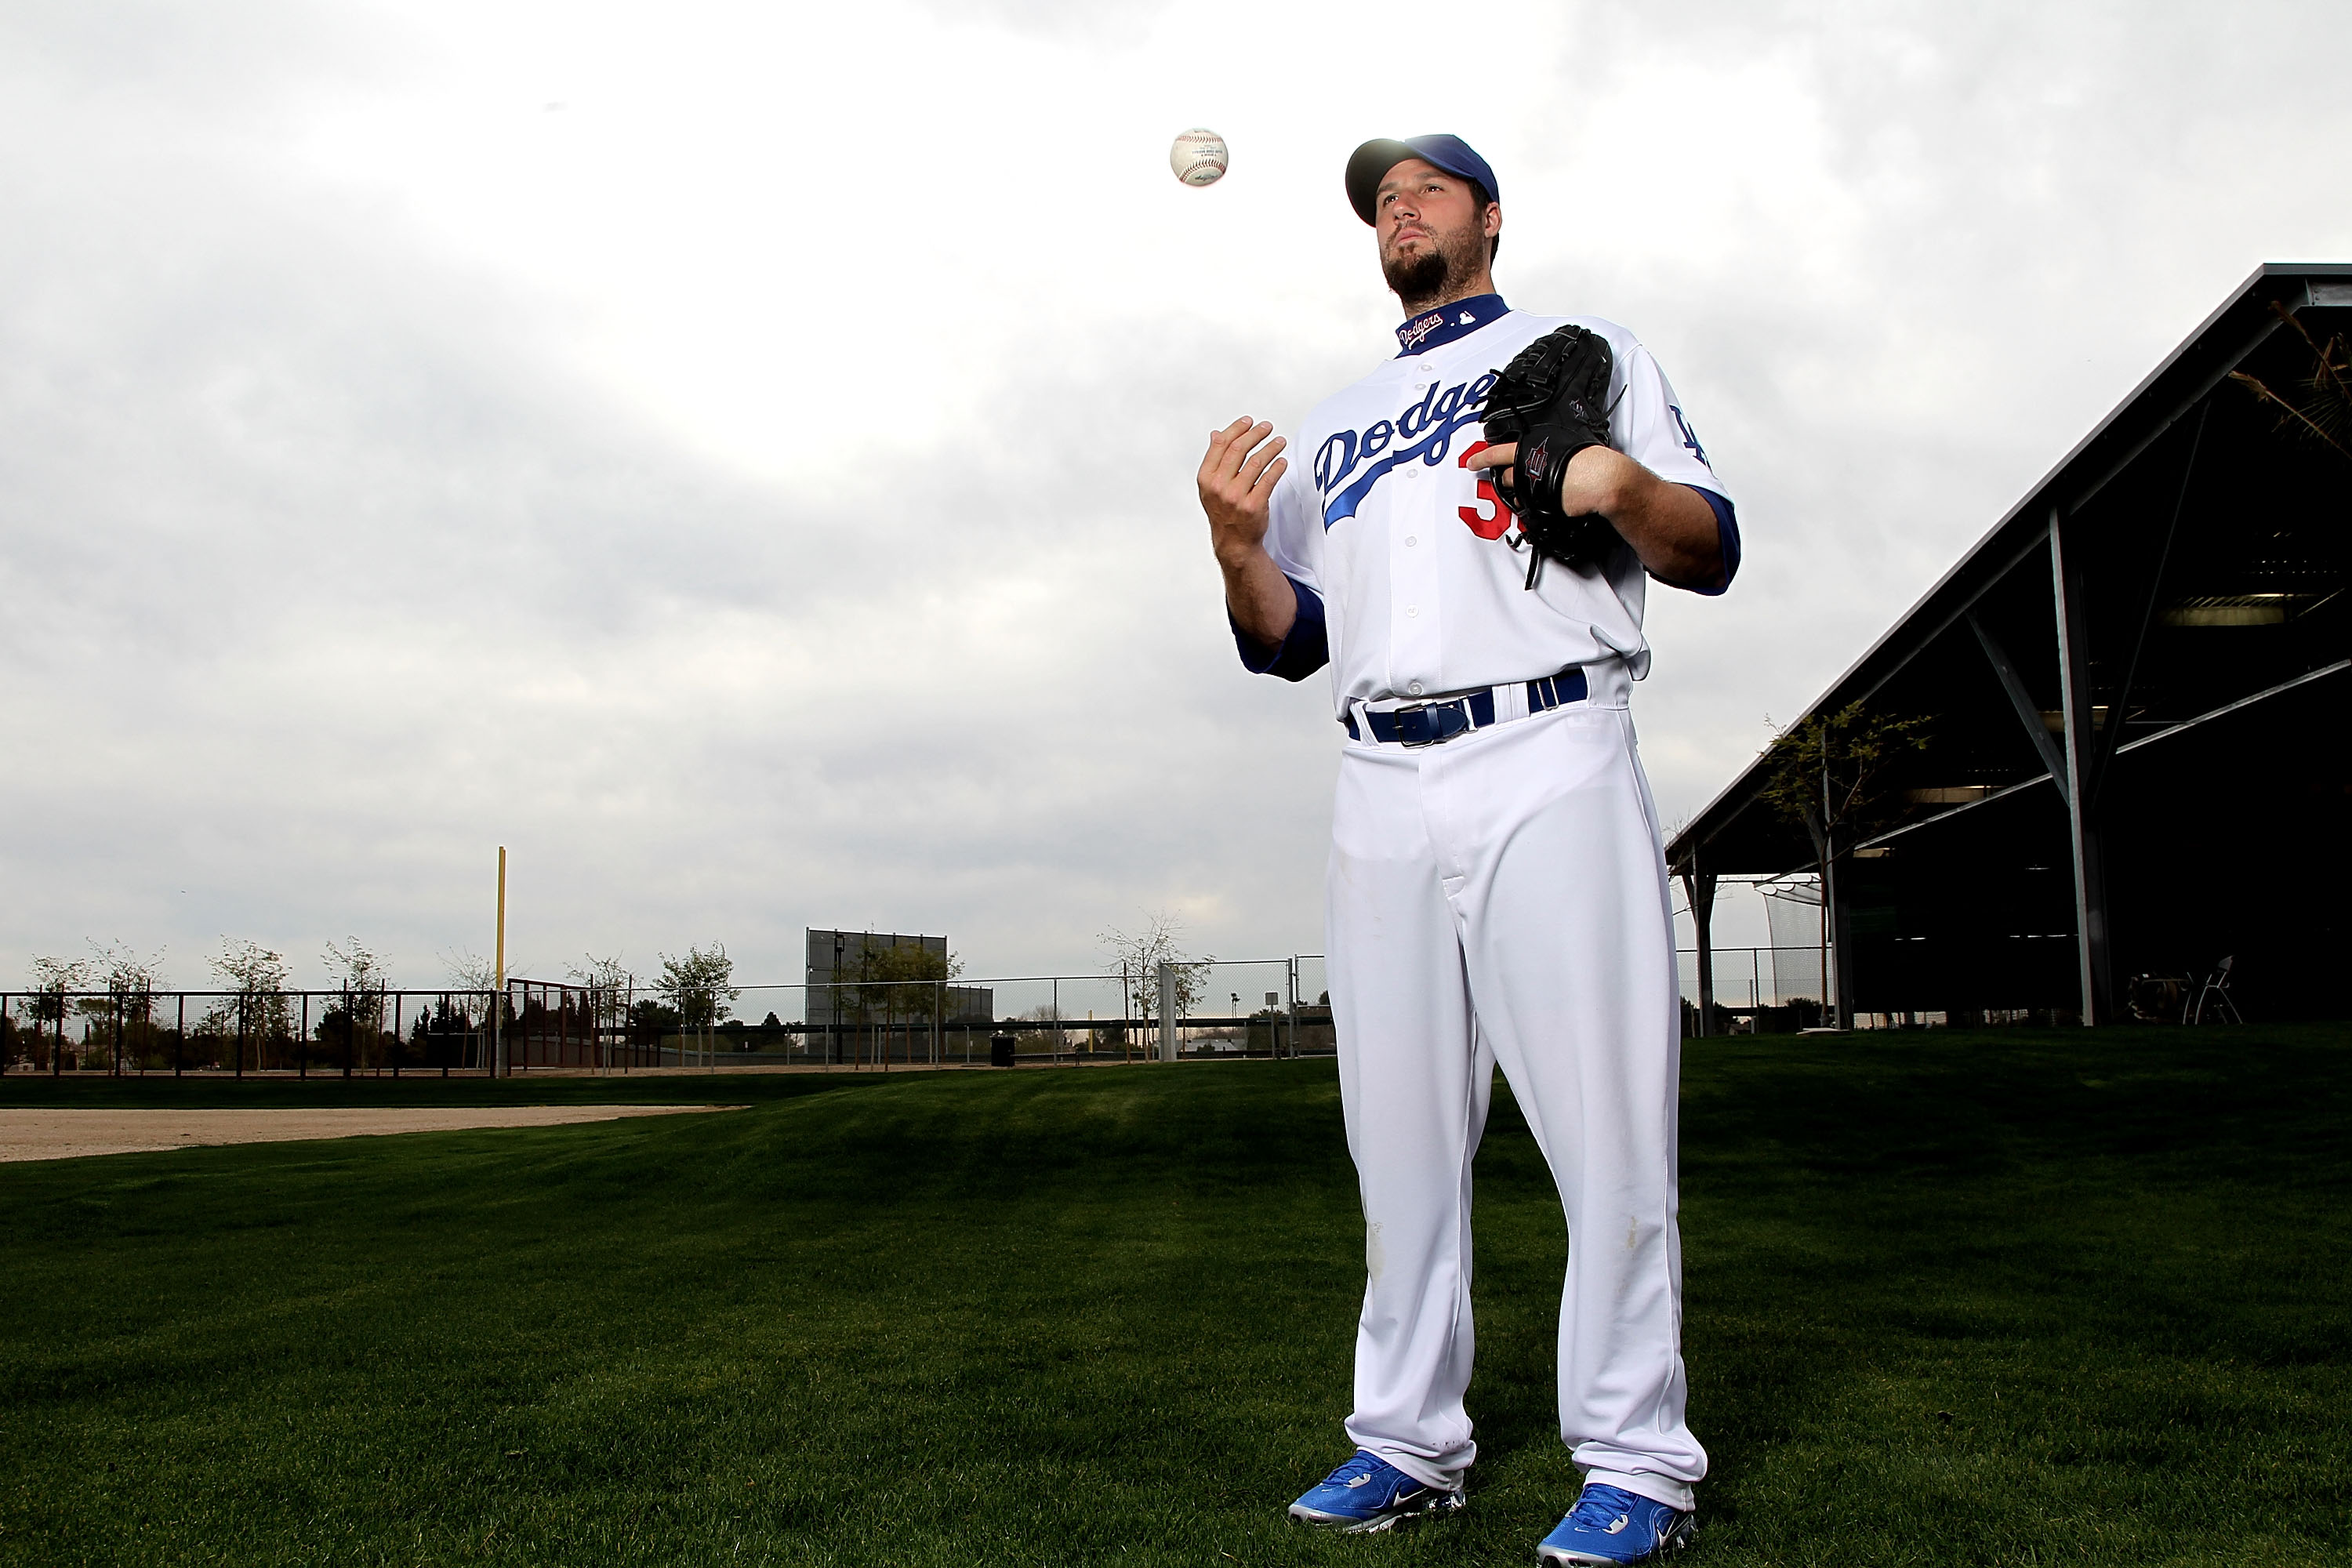 GLENDALE, AZ - FEBRUARY 27:  Eric Gagne of the Los Angeles Dodgers poses during media photo day on February 27, 2010 at the Ballpark at Camelback Ranch, in Glendale, Arizona.  (Photo by Jed Jacobsohn/Getty Images)